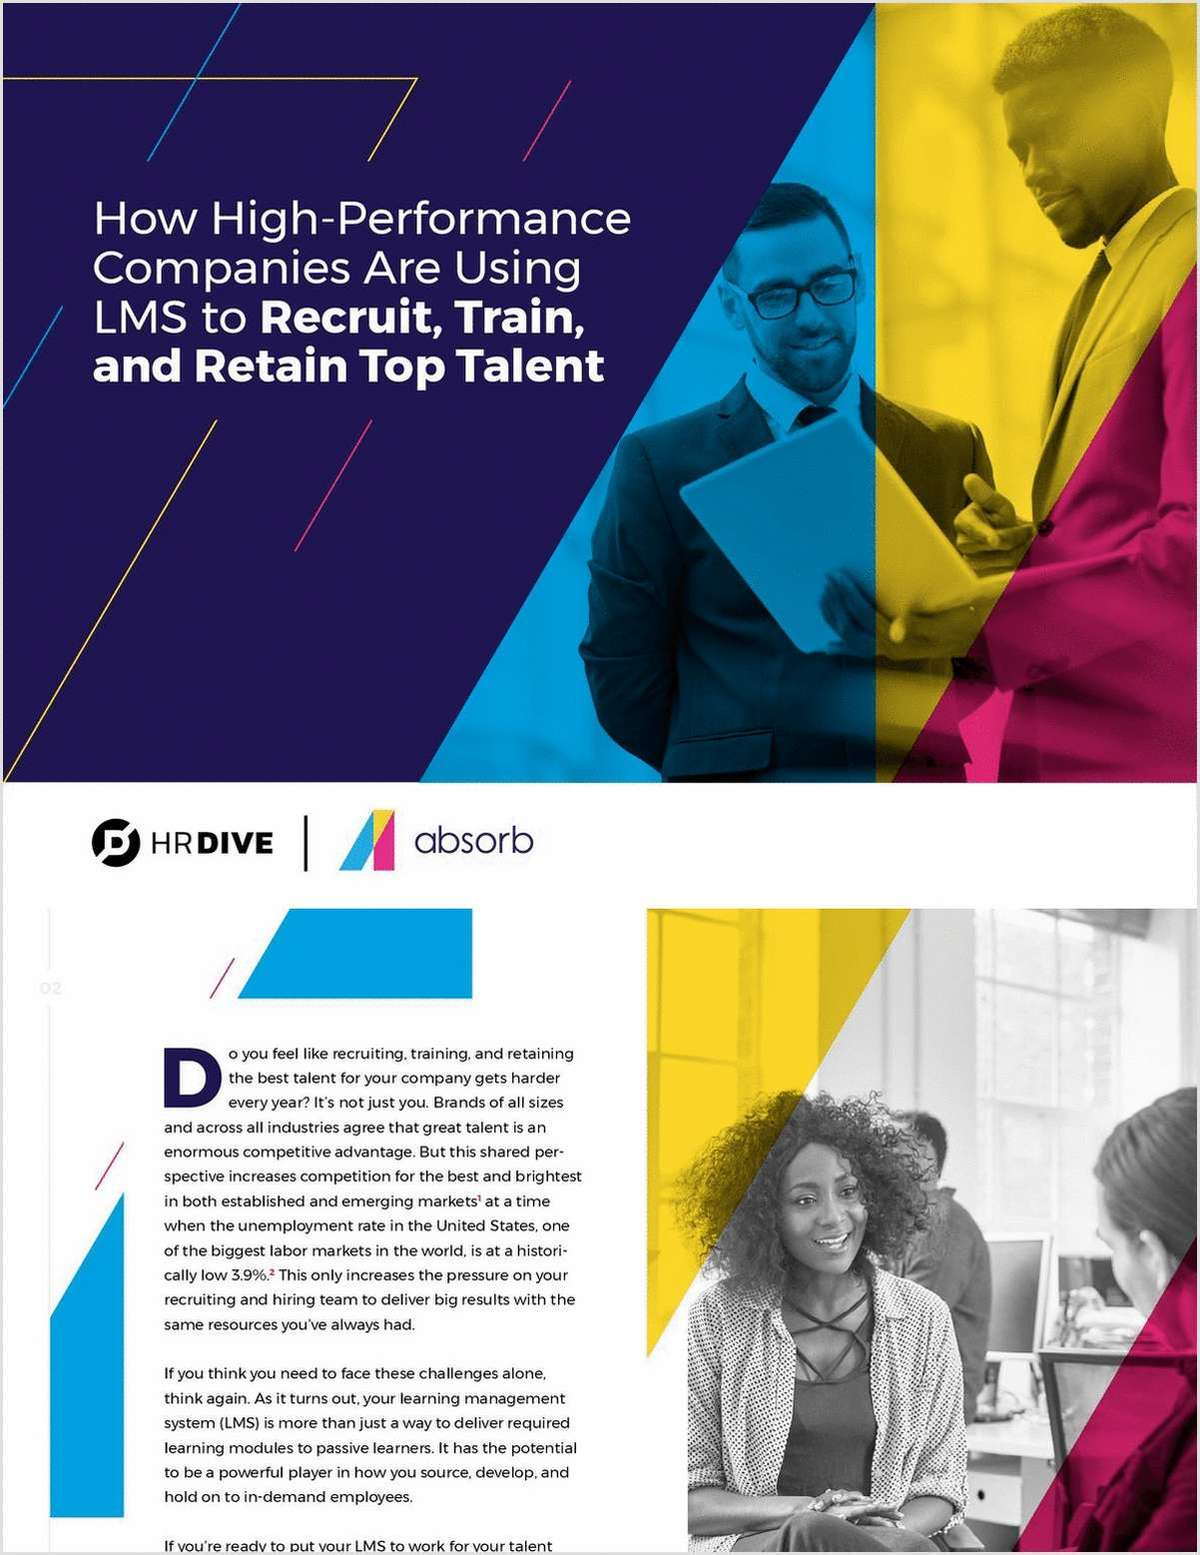 How High-Performance Companies Are Using LMS to Recruit, Train and Retain Top Talent